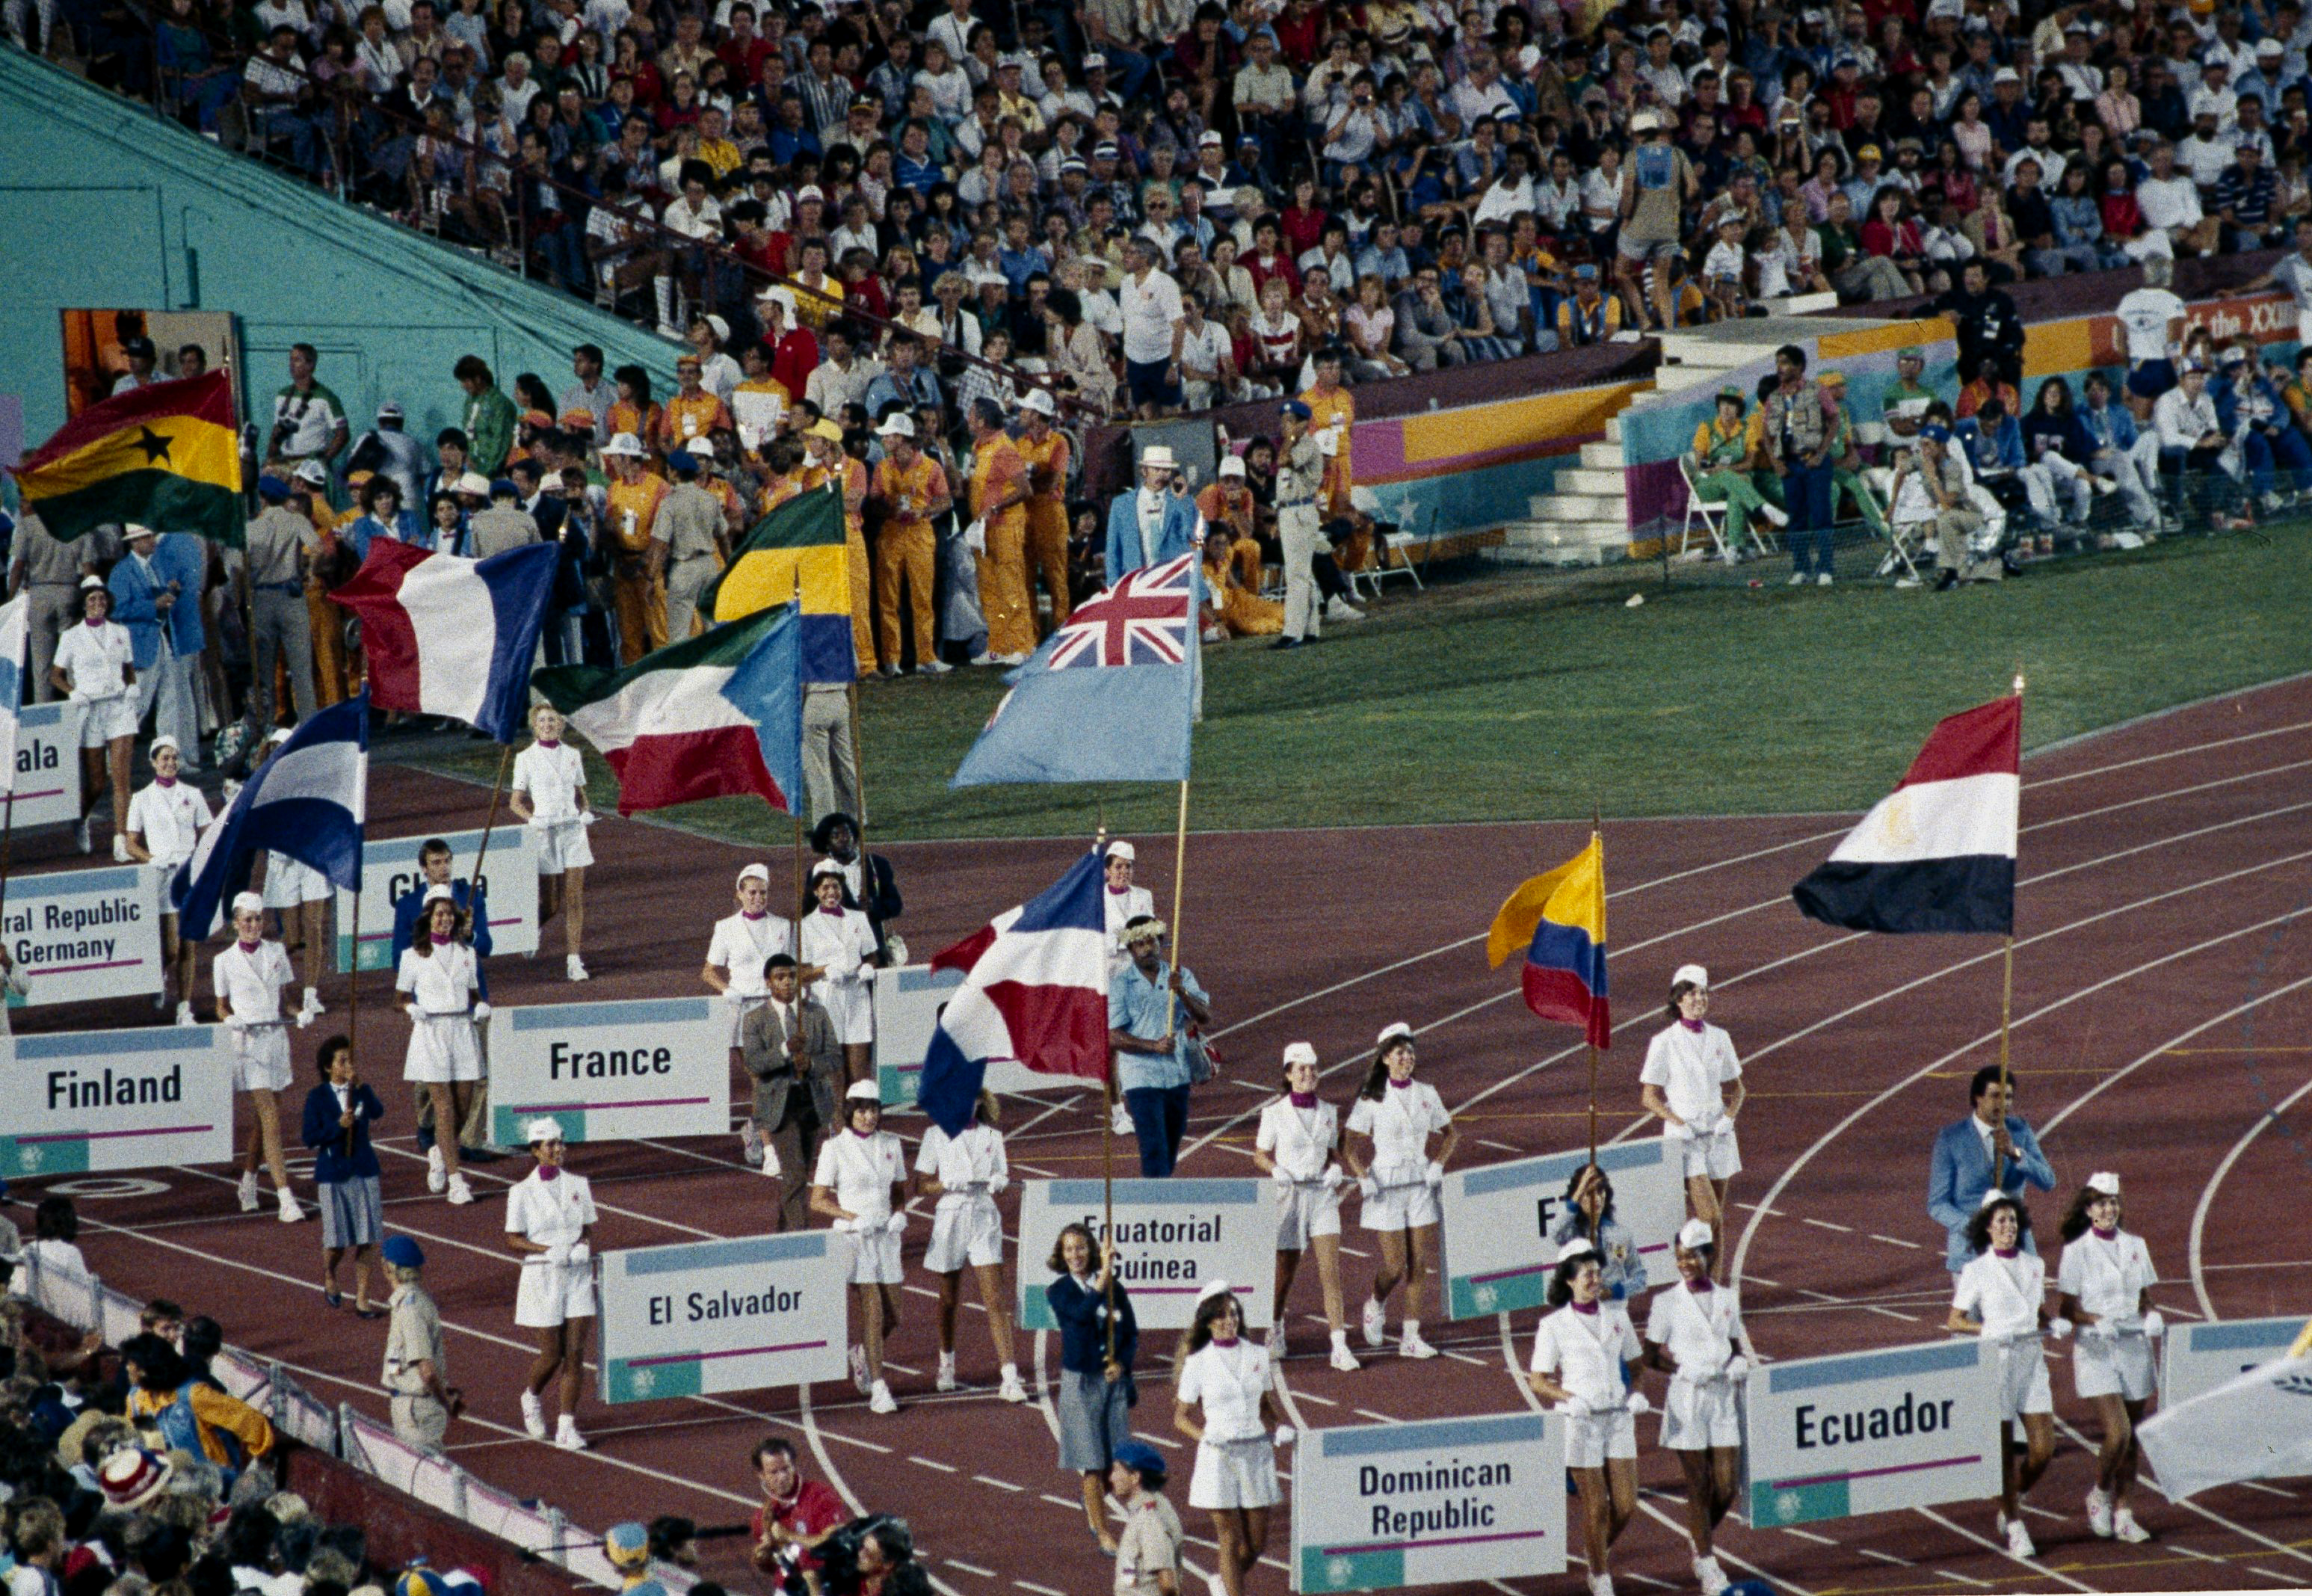 "<div class=""meta image-caption""><div class=""origin-logo origin-image ap""><span>AP</span></div><span class=""caption-text"">This is the scene at closing ceremonies at the XXIII Olympiad in Los Angeles, Calif., Aug. 12, 1984. (AP Photo/Armando Trovati)</span></div>"